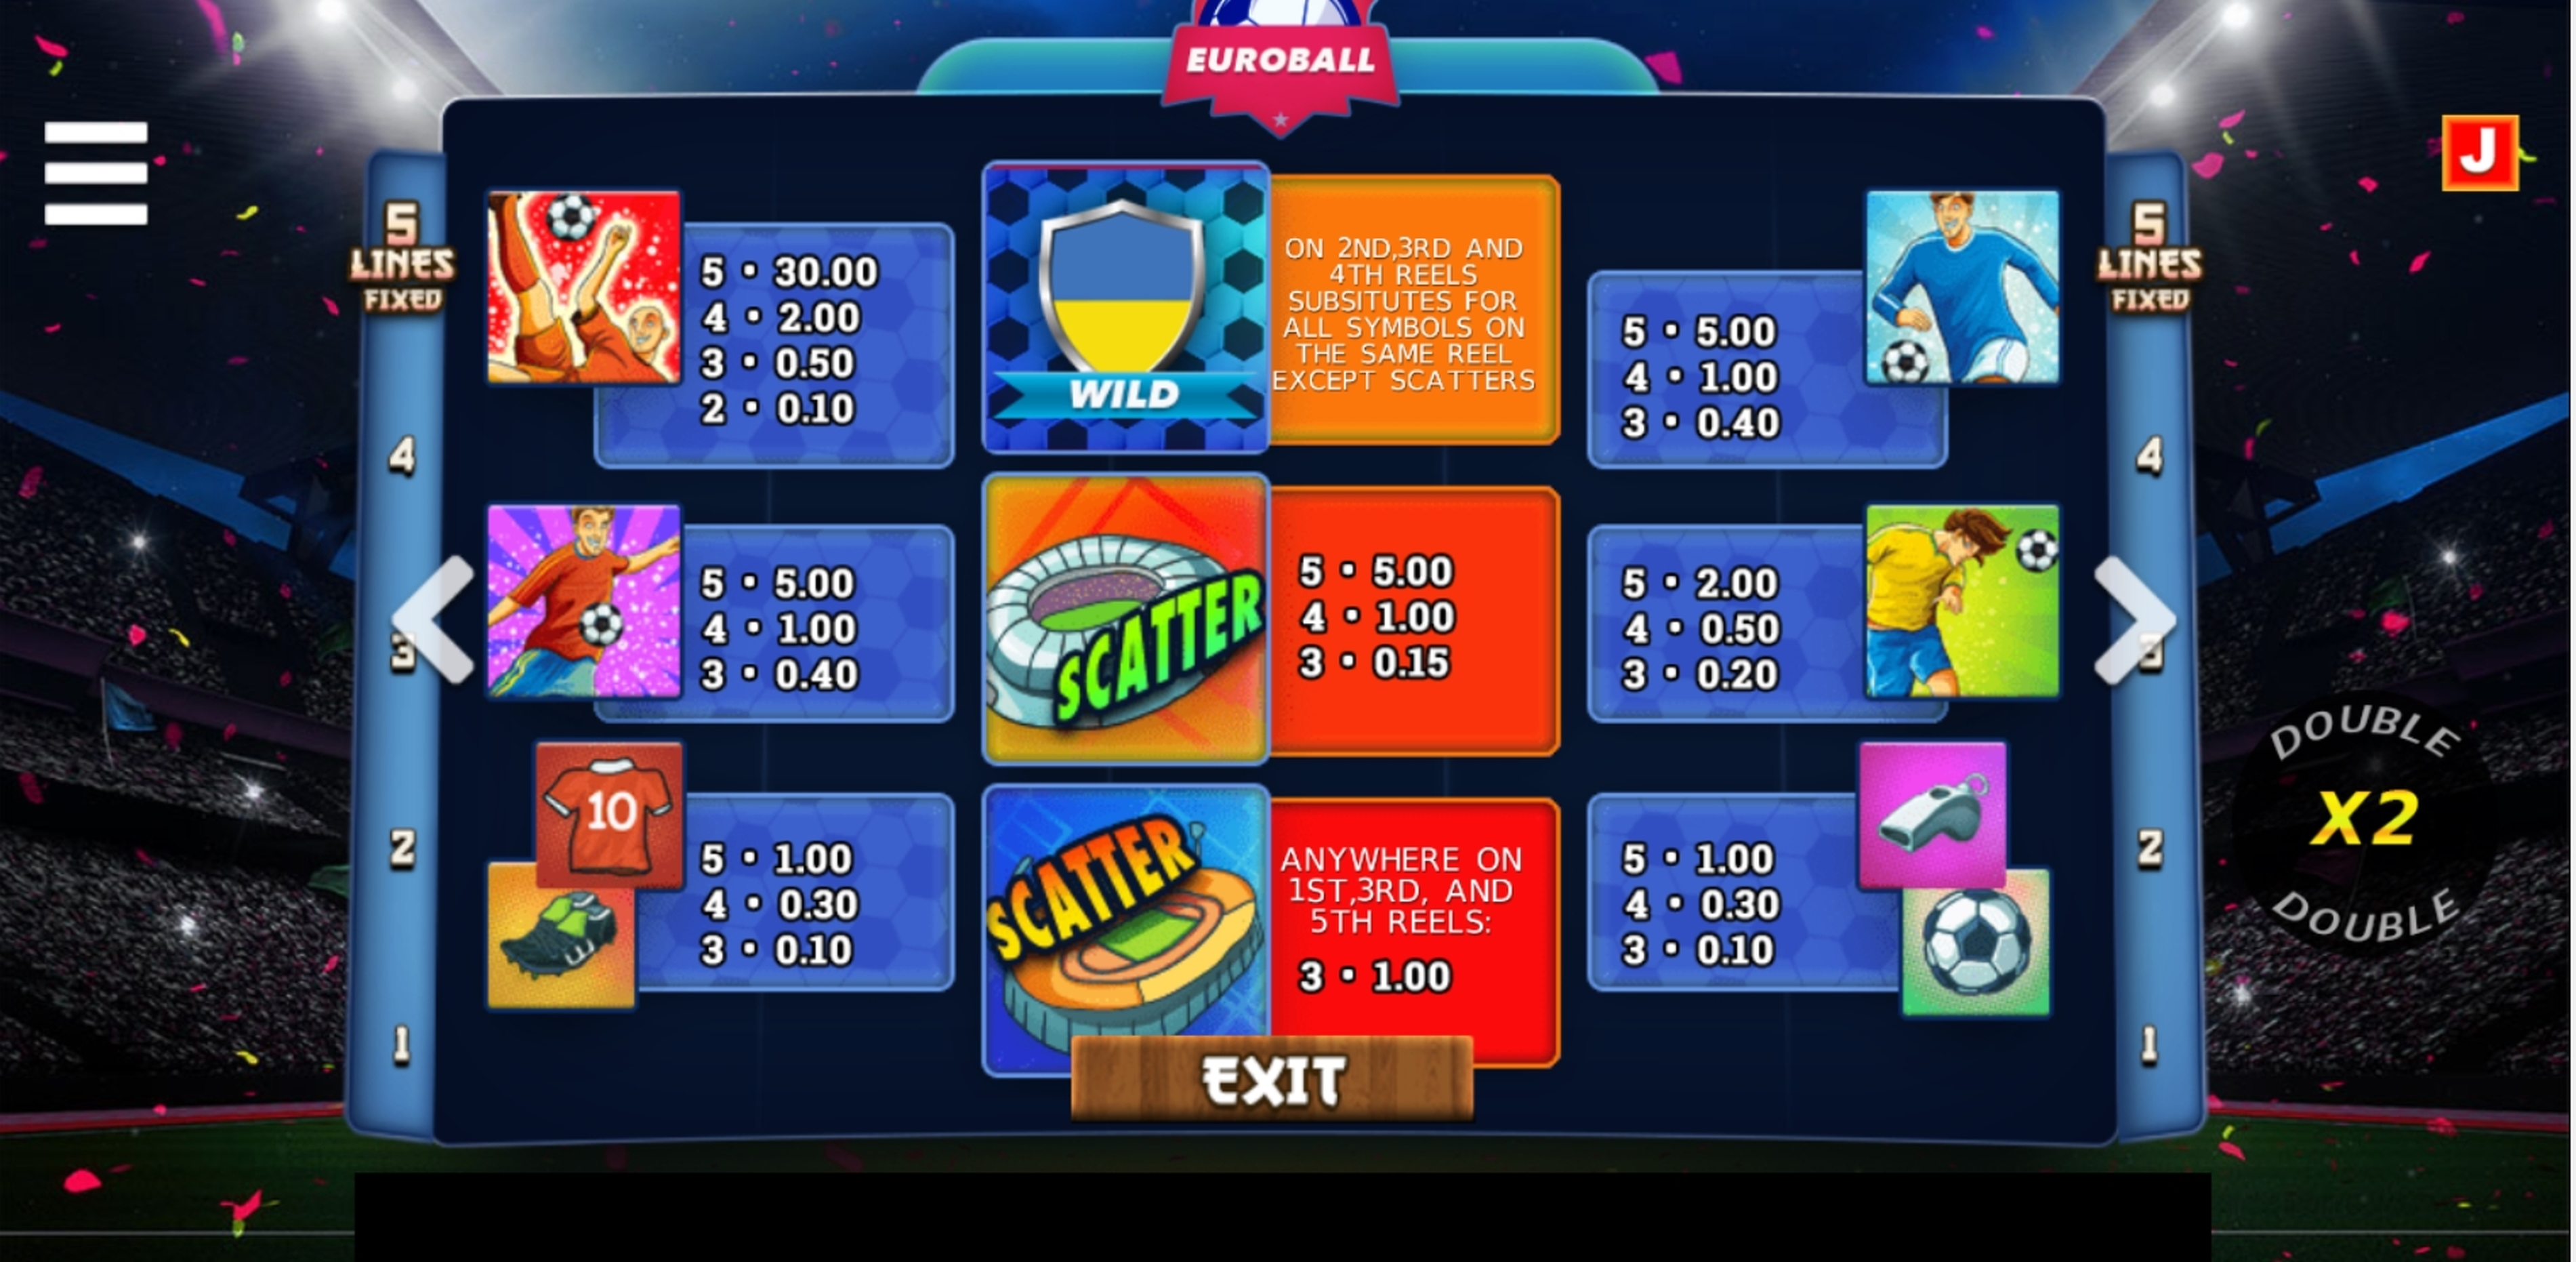 Info of Euroball Slot Game by Betsense